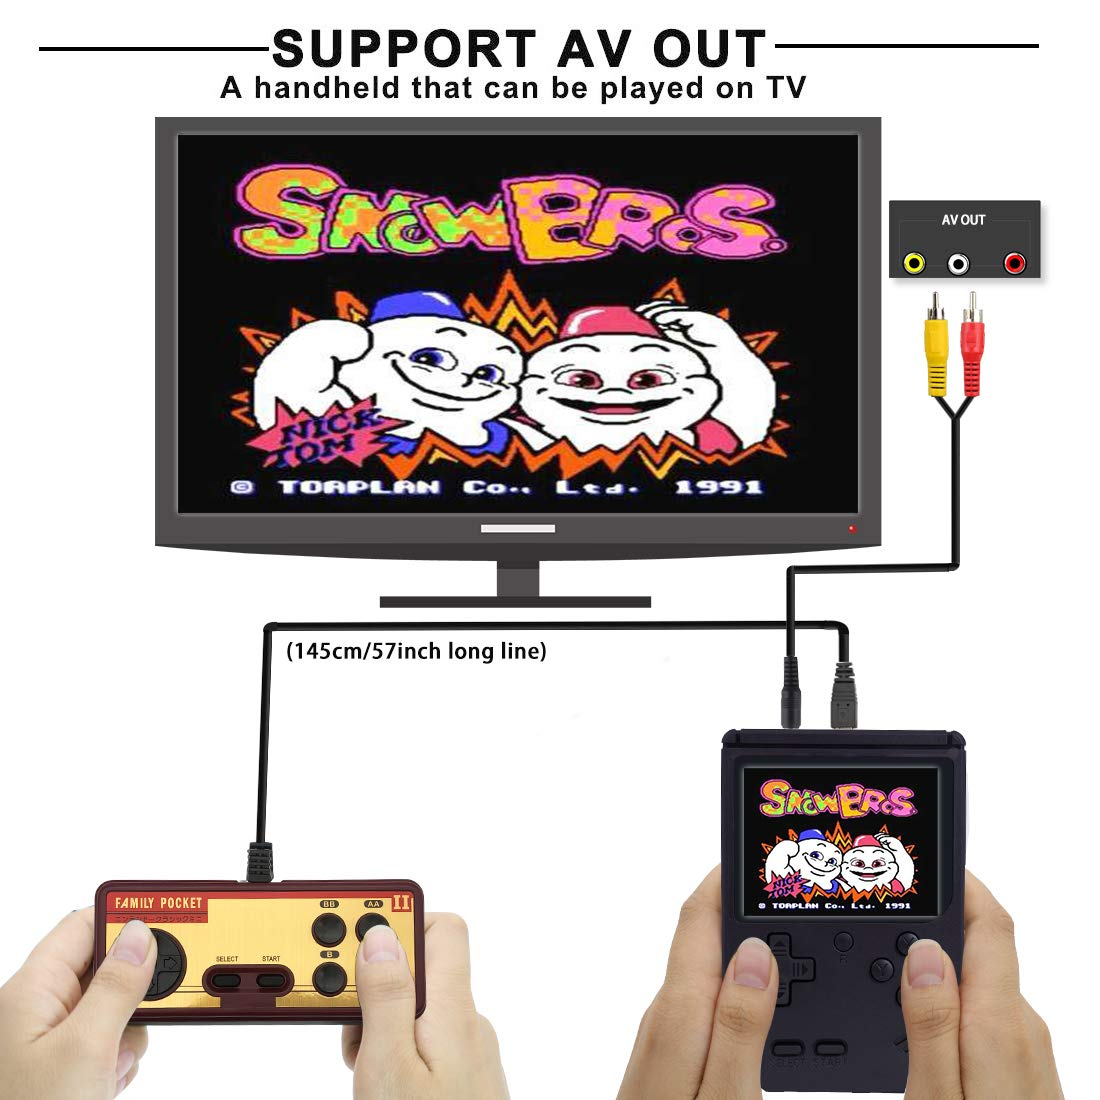 AKTOUGST Handheld Game Console, Retro Game Console 400 Classic Game FC System Video Portable Mini Extra Joystick Controller Support TV 2 Player,Gift for Children Adult, (Black) by AKTOUGST (Image #2)